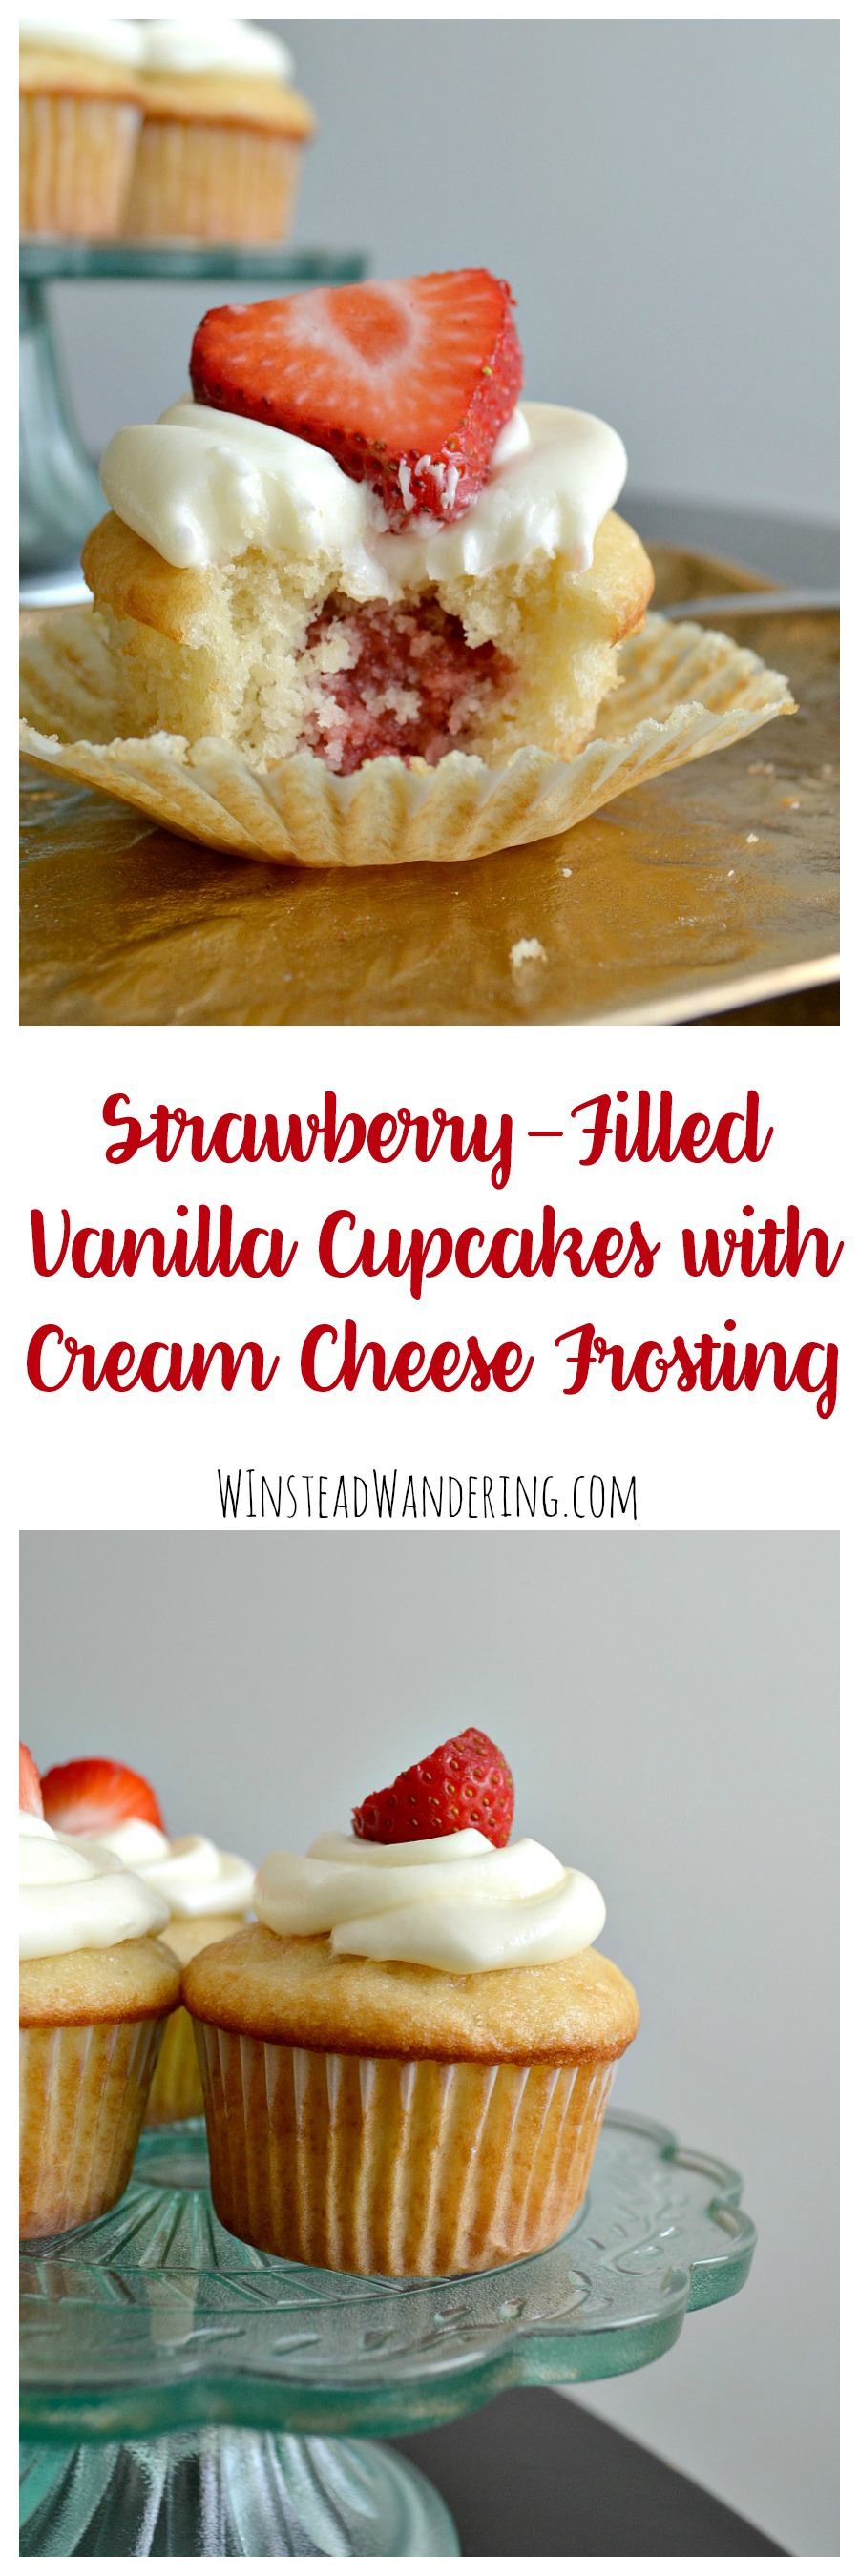 What happens when you combine homemade strawberry filling, moist vanilla cupcakes, and decadent cream cheese frosting? You get Strawberry-Filled Vanilla Cupcakes with Cream Cheese Frosting.